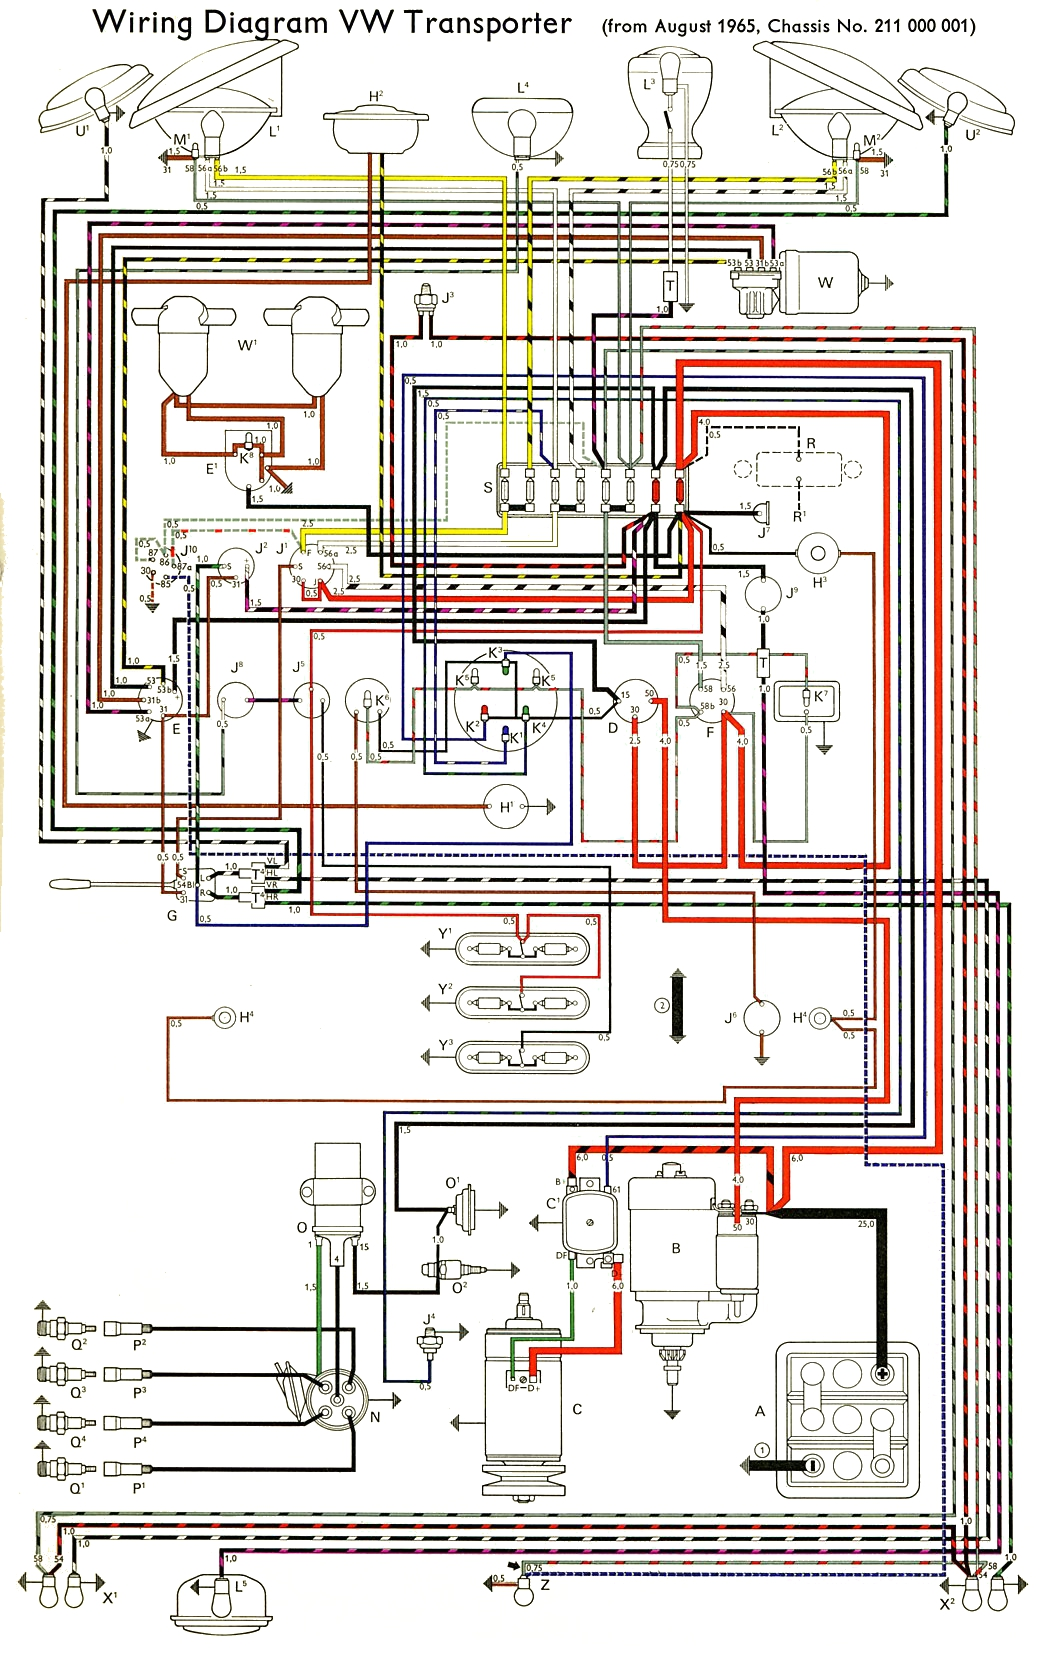 mg tc wiring diagram mg image wiring diagram 1965 mg midget wiring diagram diagram get image about on mg tc wiring diagram